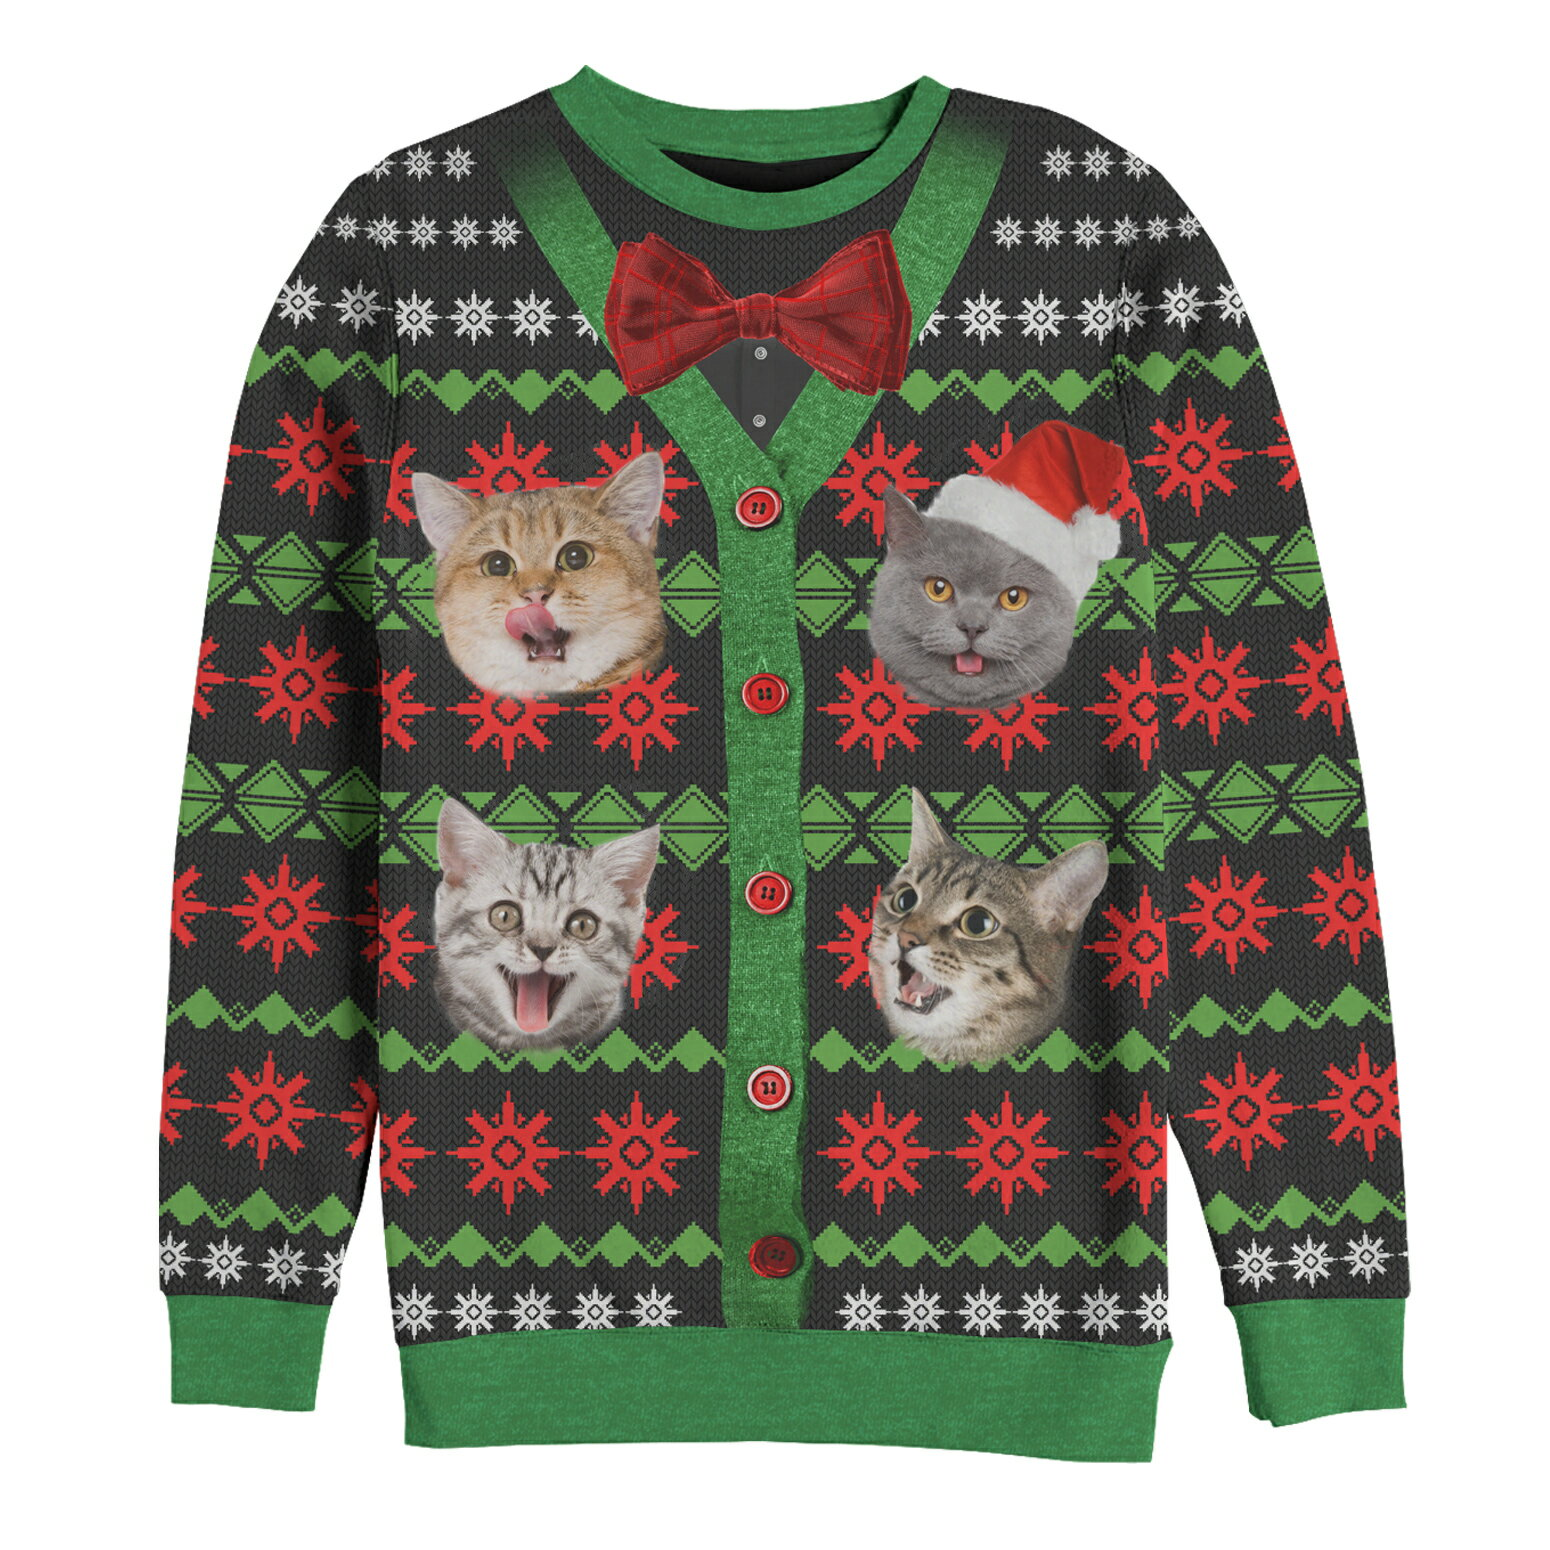 180a50df3f66d6 Lost Gods Ugly Christmas Sweater Bow-Tie Cat Explosion Mens Graphic  All-Over Sweatshirt